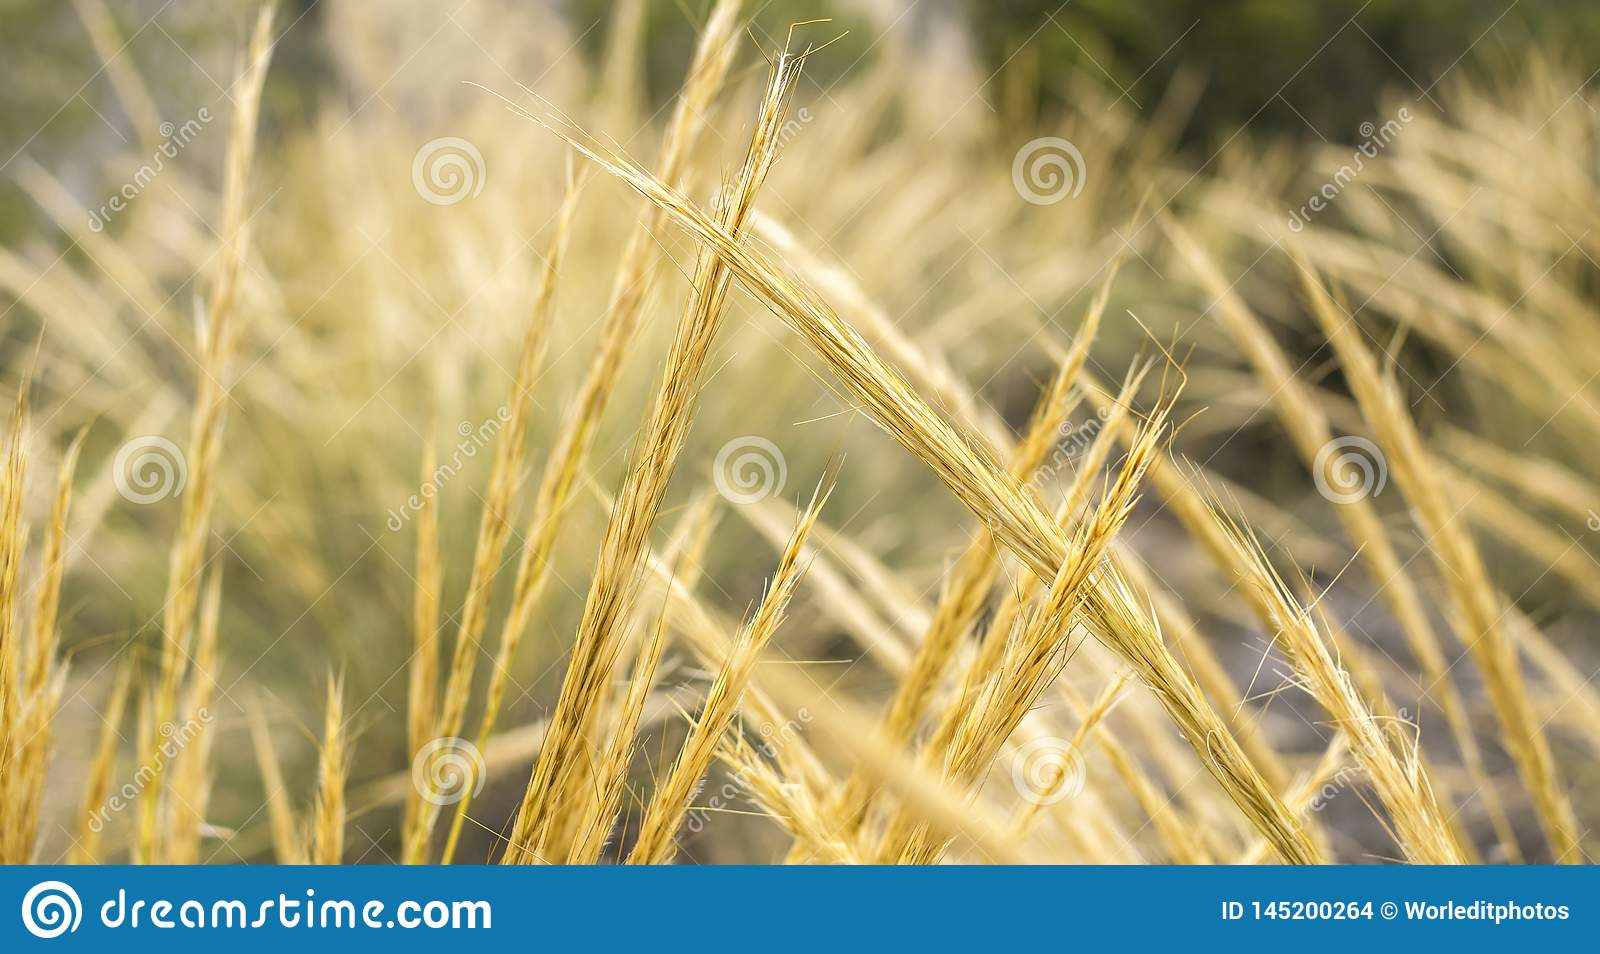 Golden wheat spikes backlit with natural sunlight